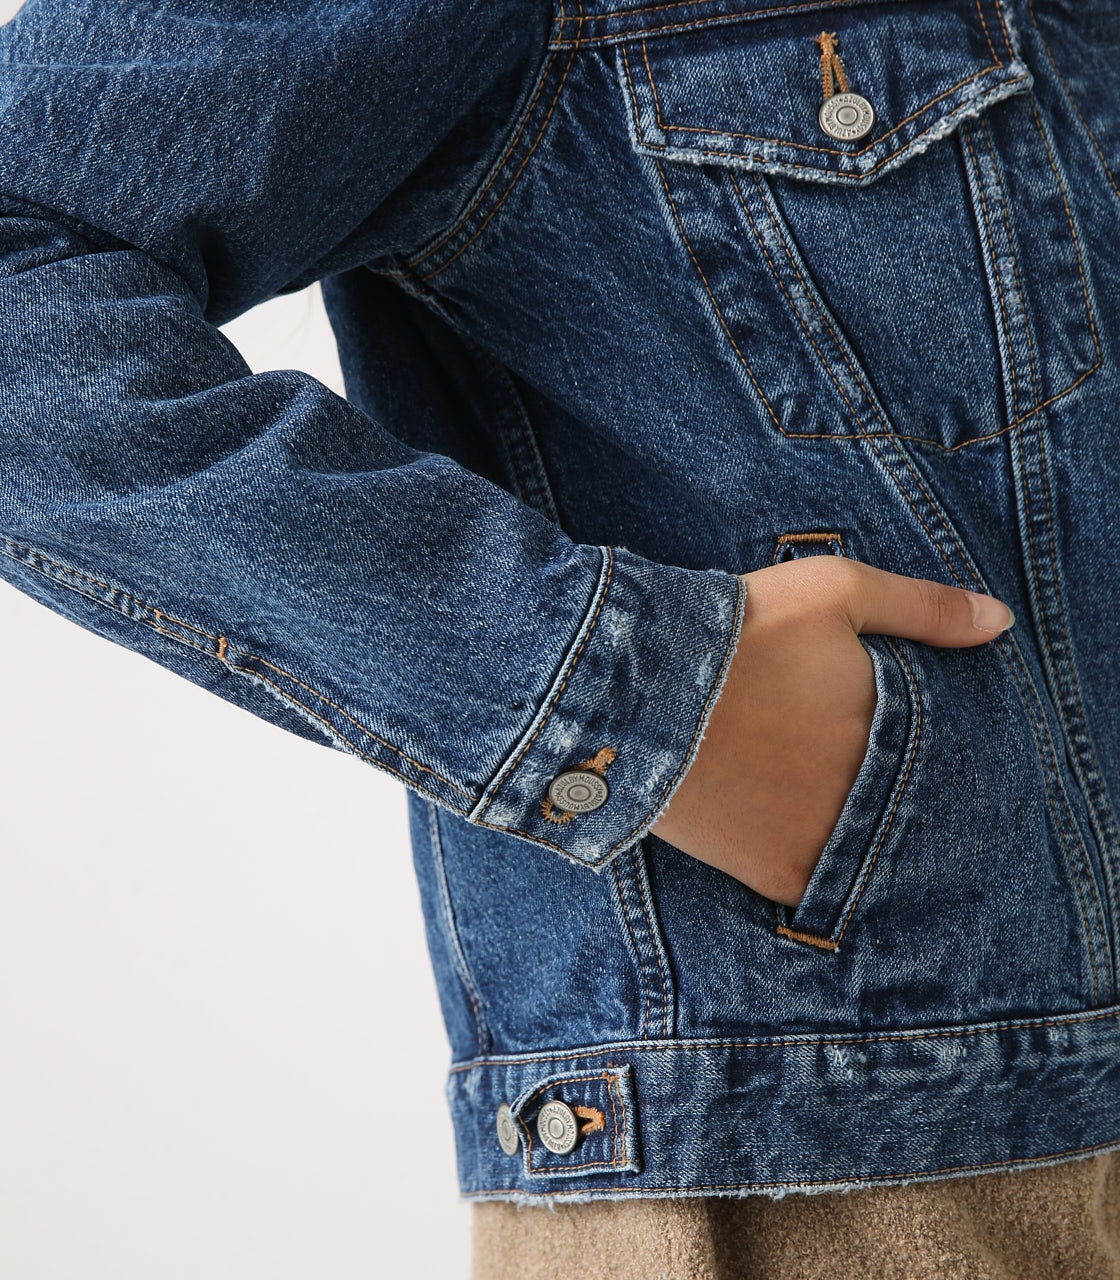 【AZUL BY MOUSSY】DENIM JACKET 詳細画像 BLU 9